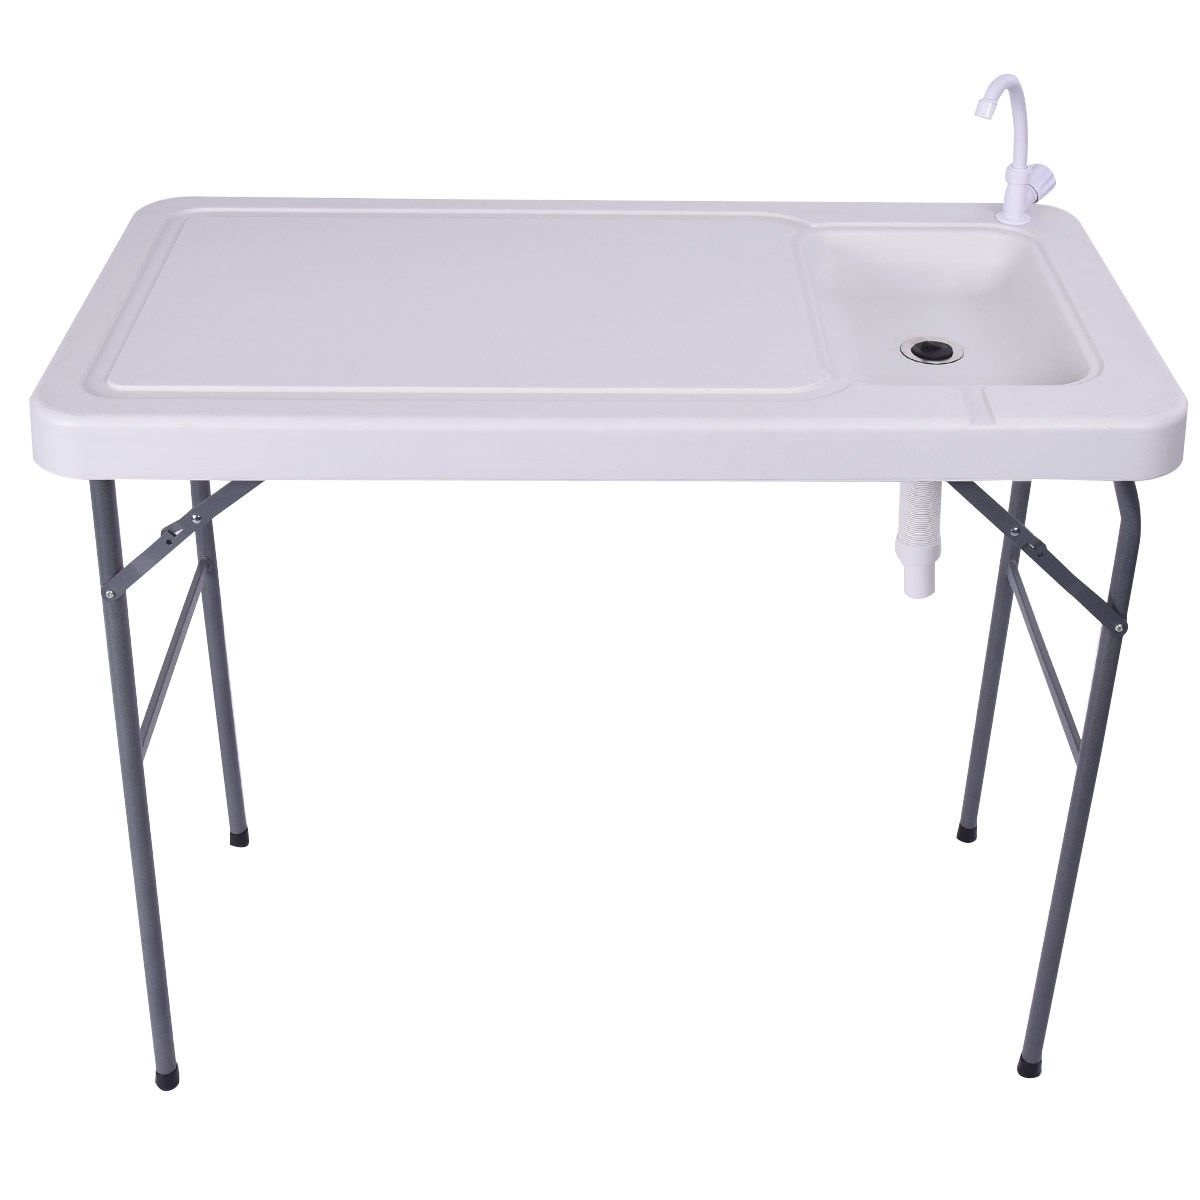 FDInspiration 45'' Outdoor Folding Portable Fish Cleaning Table Camping Sink Faucet w/Adjustable Drain Hose